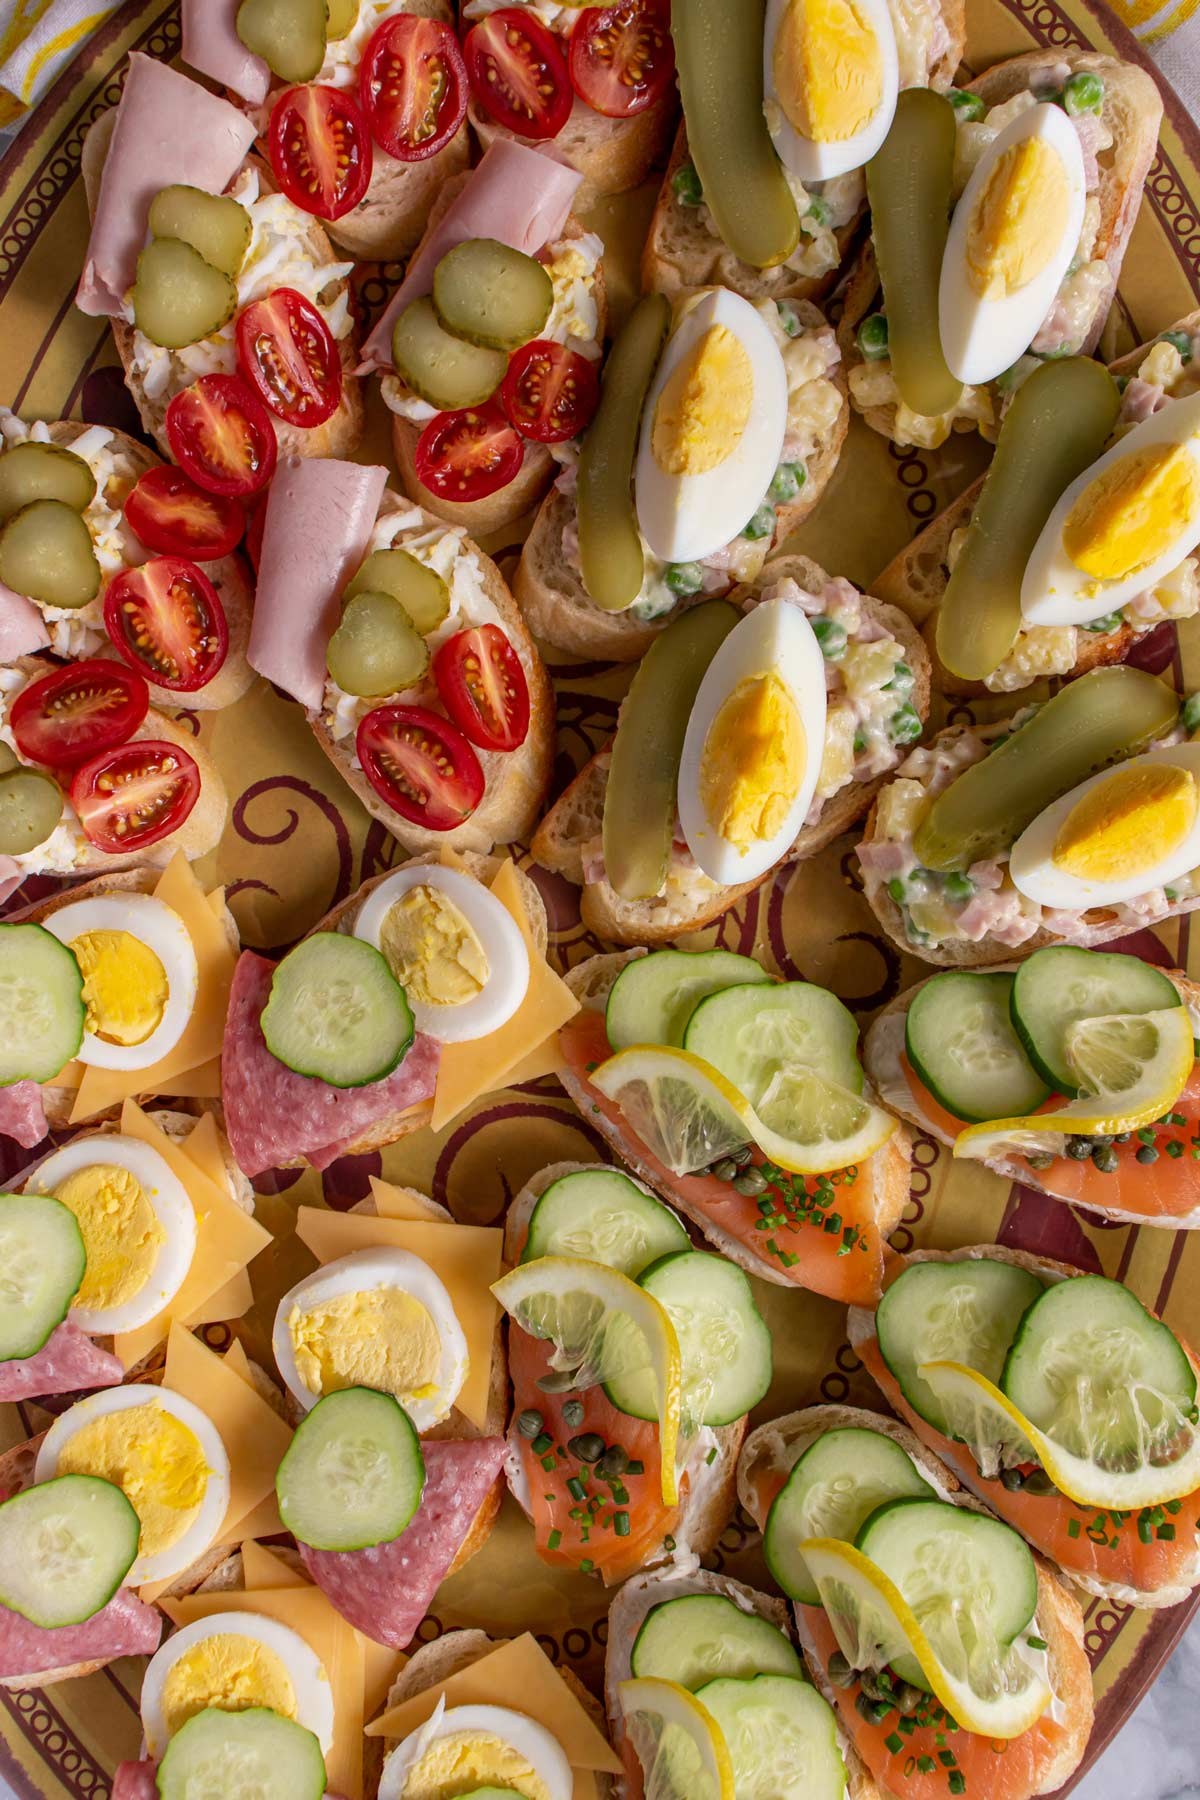 Four varieties of Czech open-faced sandwiches on a large oval platter.